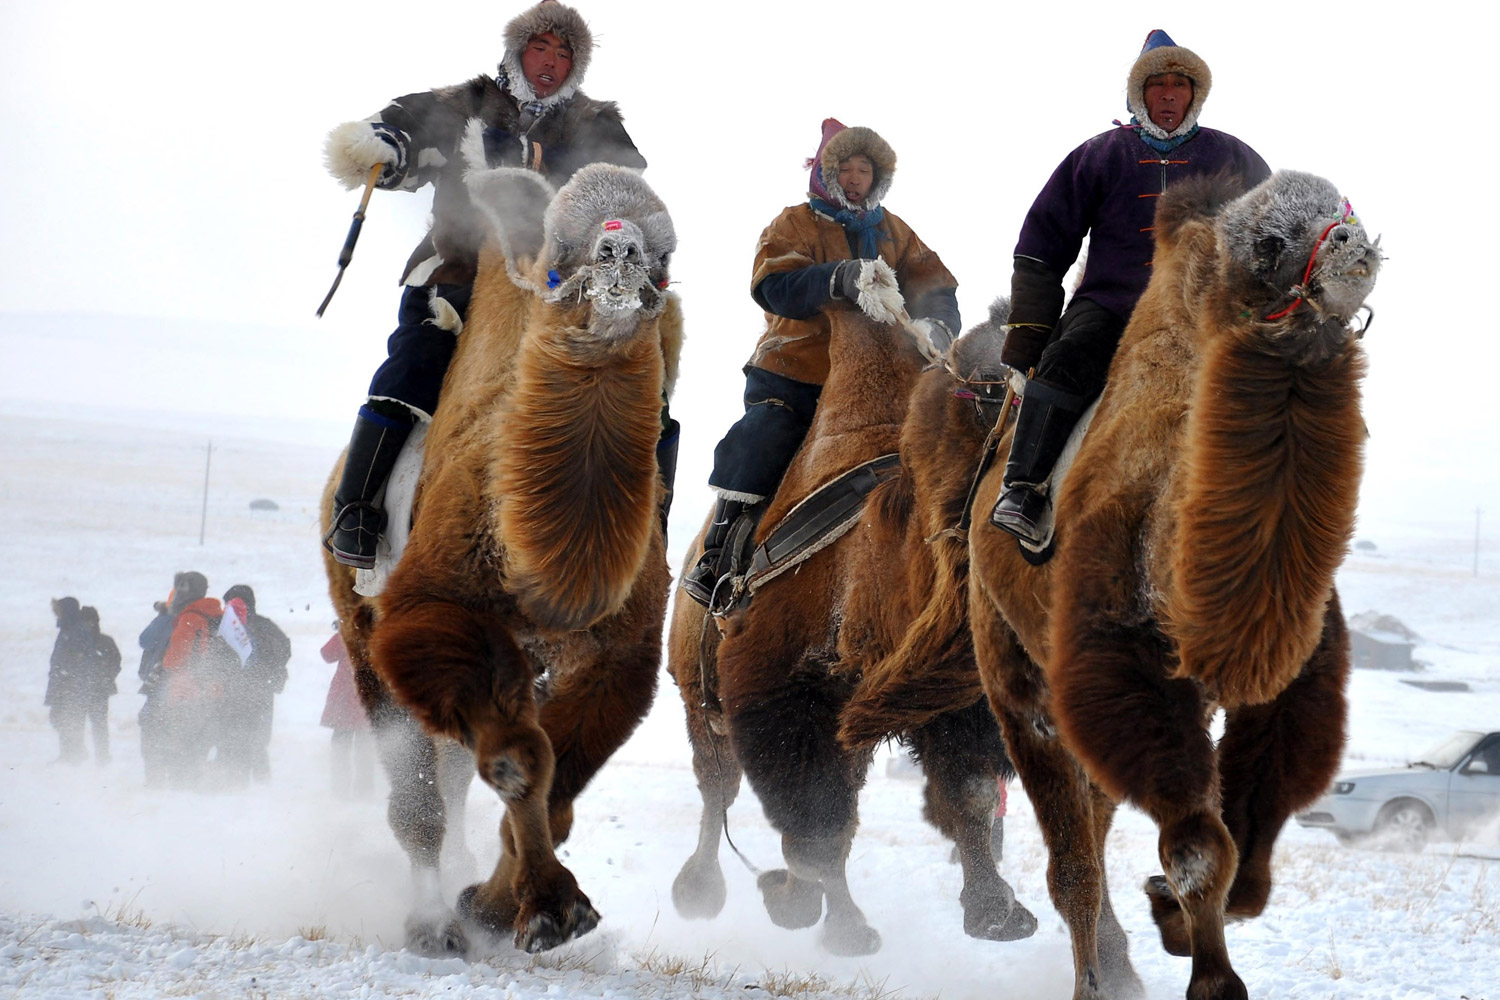 December 2, 2011. Mongolian tribesmen take part in a camel race during the winter Naadam festival in Hulun Buir, north China's Inner Mongolia region, in the latest event to promote tourism in the cold winter months.